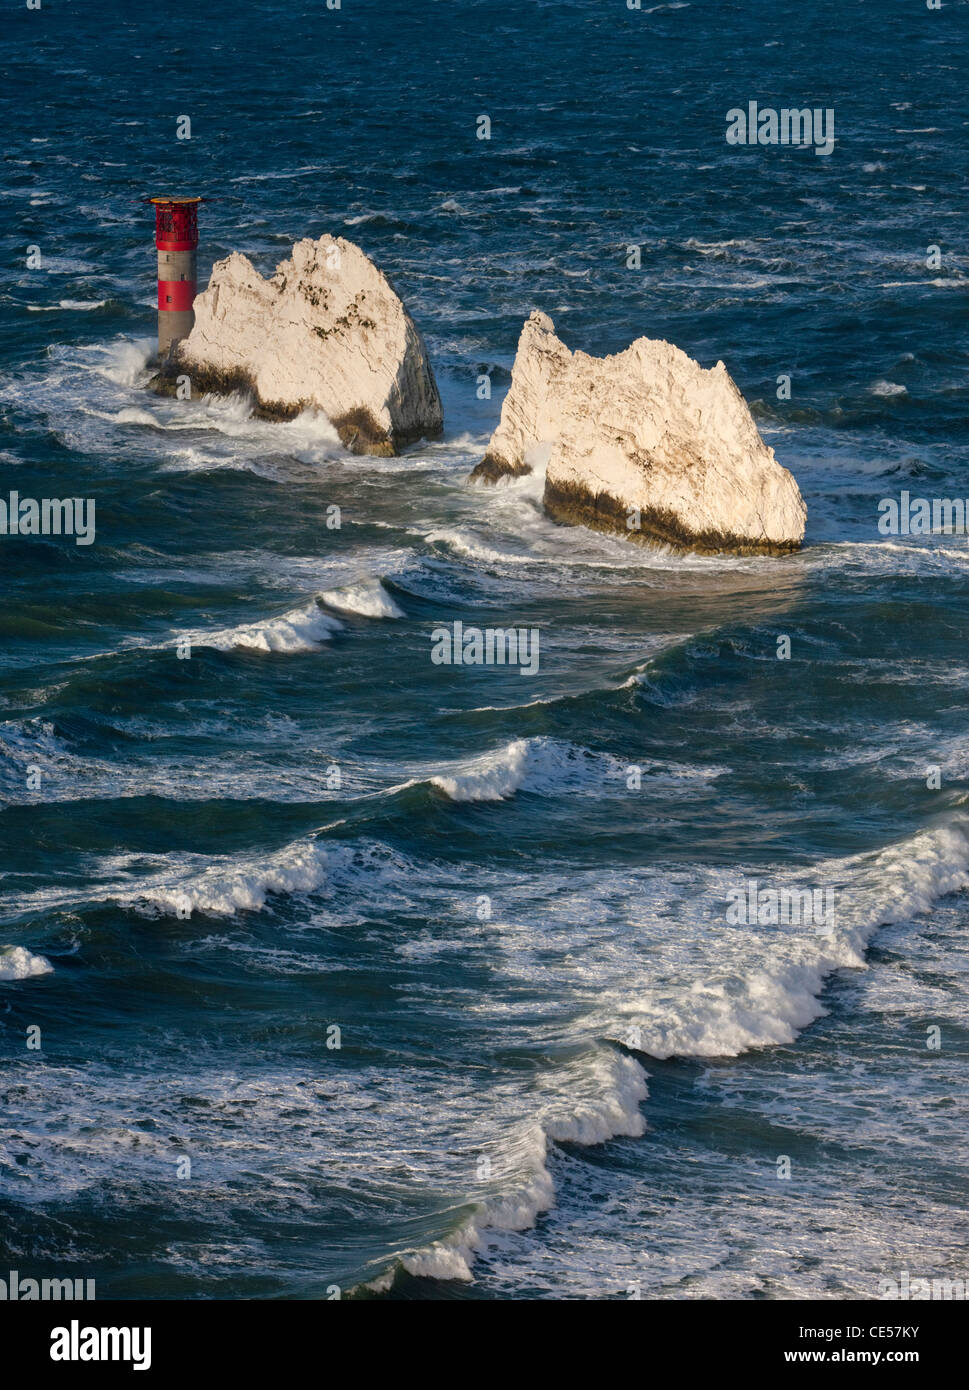 The Needles Lighthouse during Winter stormy weather, Isle of Wight, England. - Stock Image